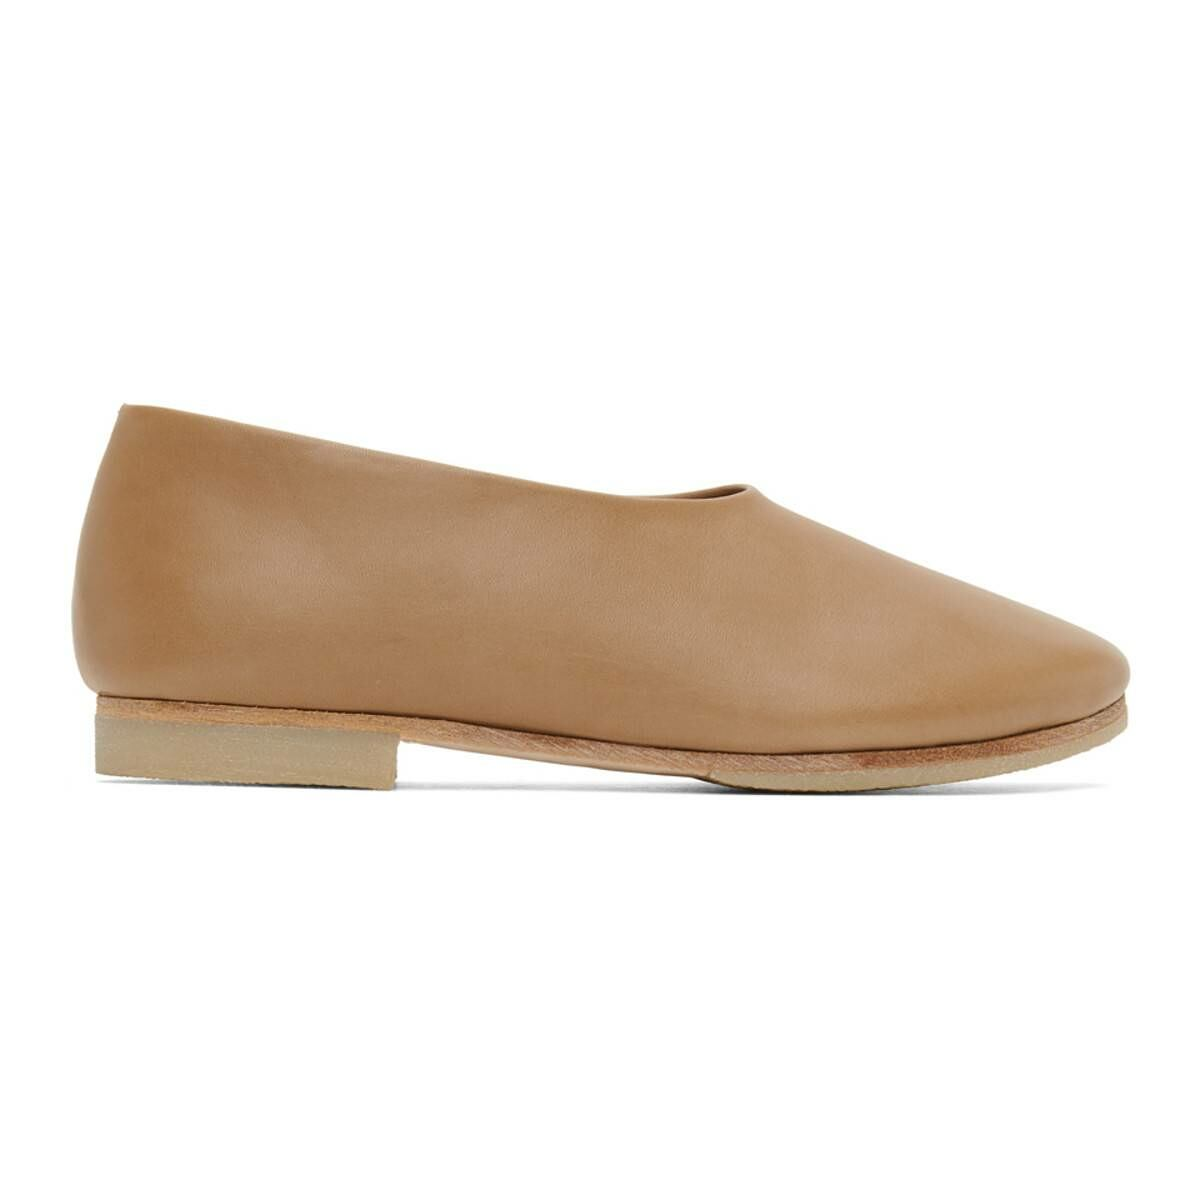 Lauren Manoogian Beige Ballet Ballerina Flats Ssense USA WOMEN Women SHOES Womens BALLERINAS